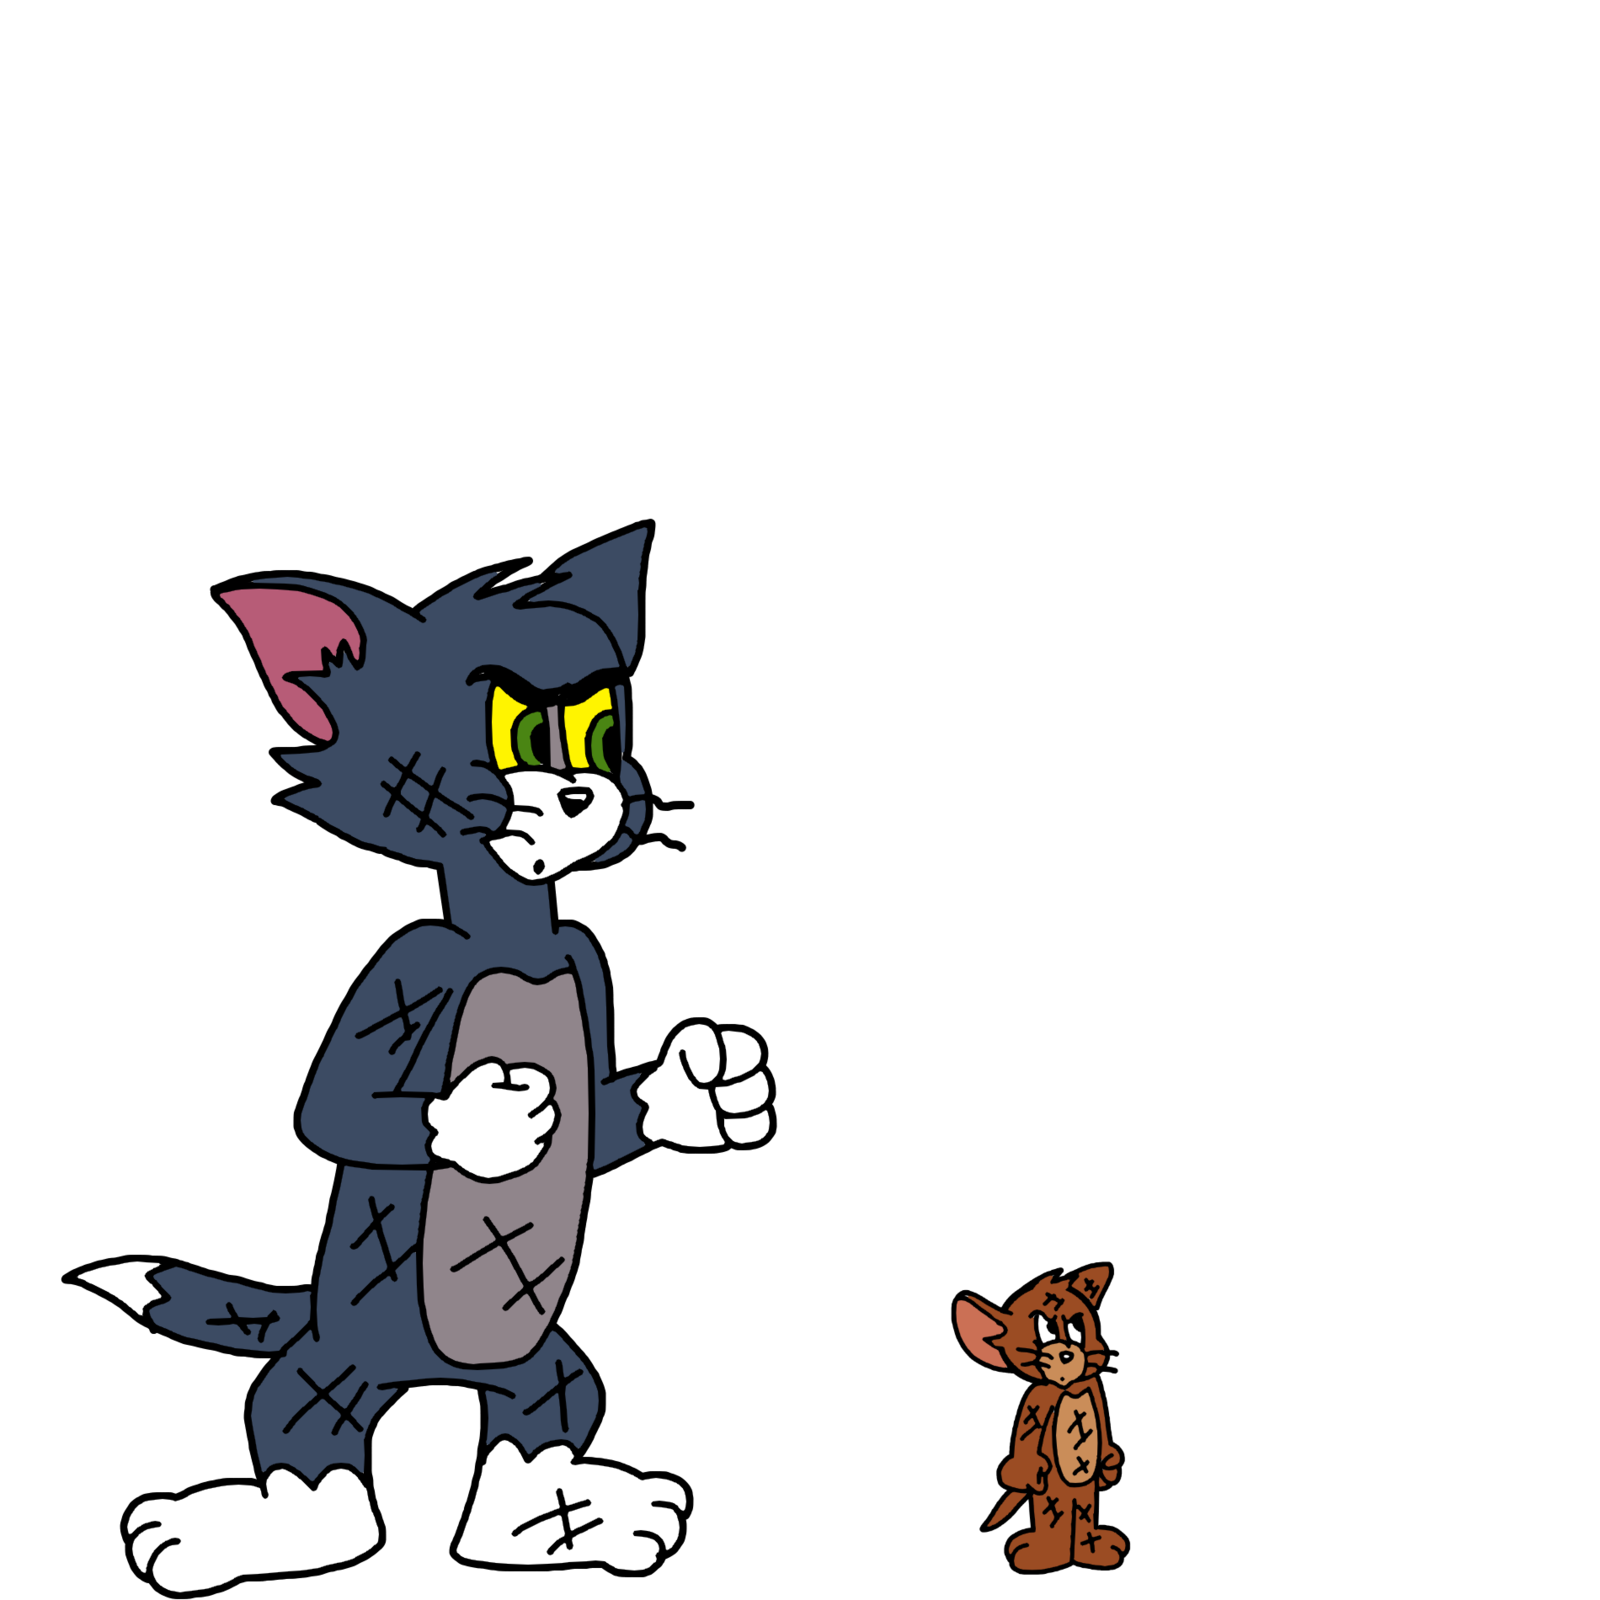 Toon Armageddon - Tom and Jerry by MarcosPower1996 on DeviantArt